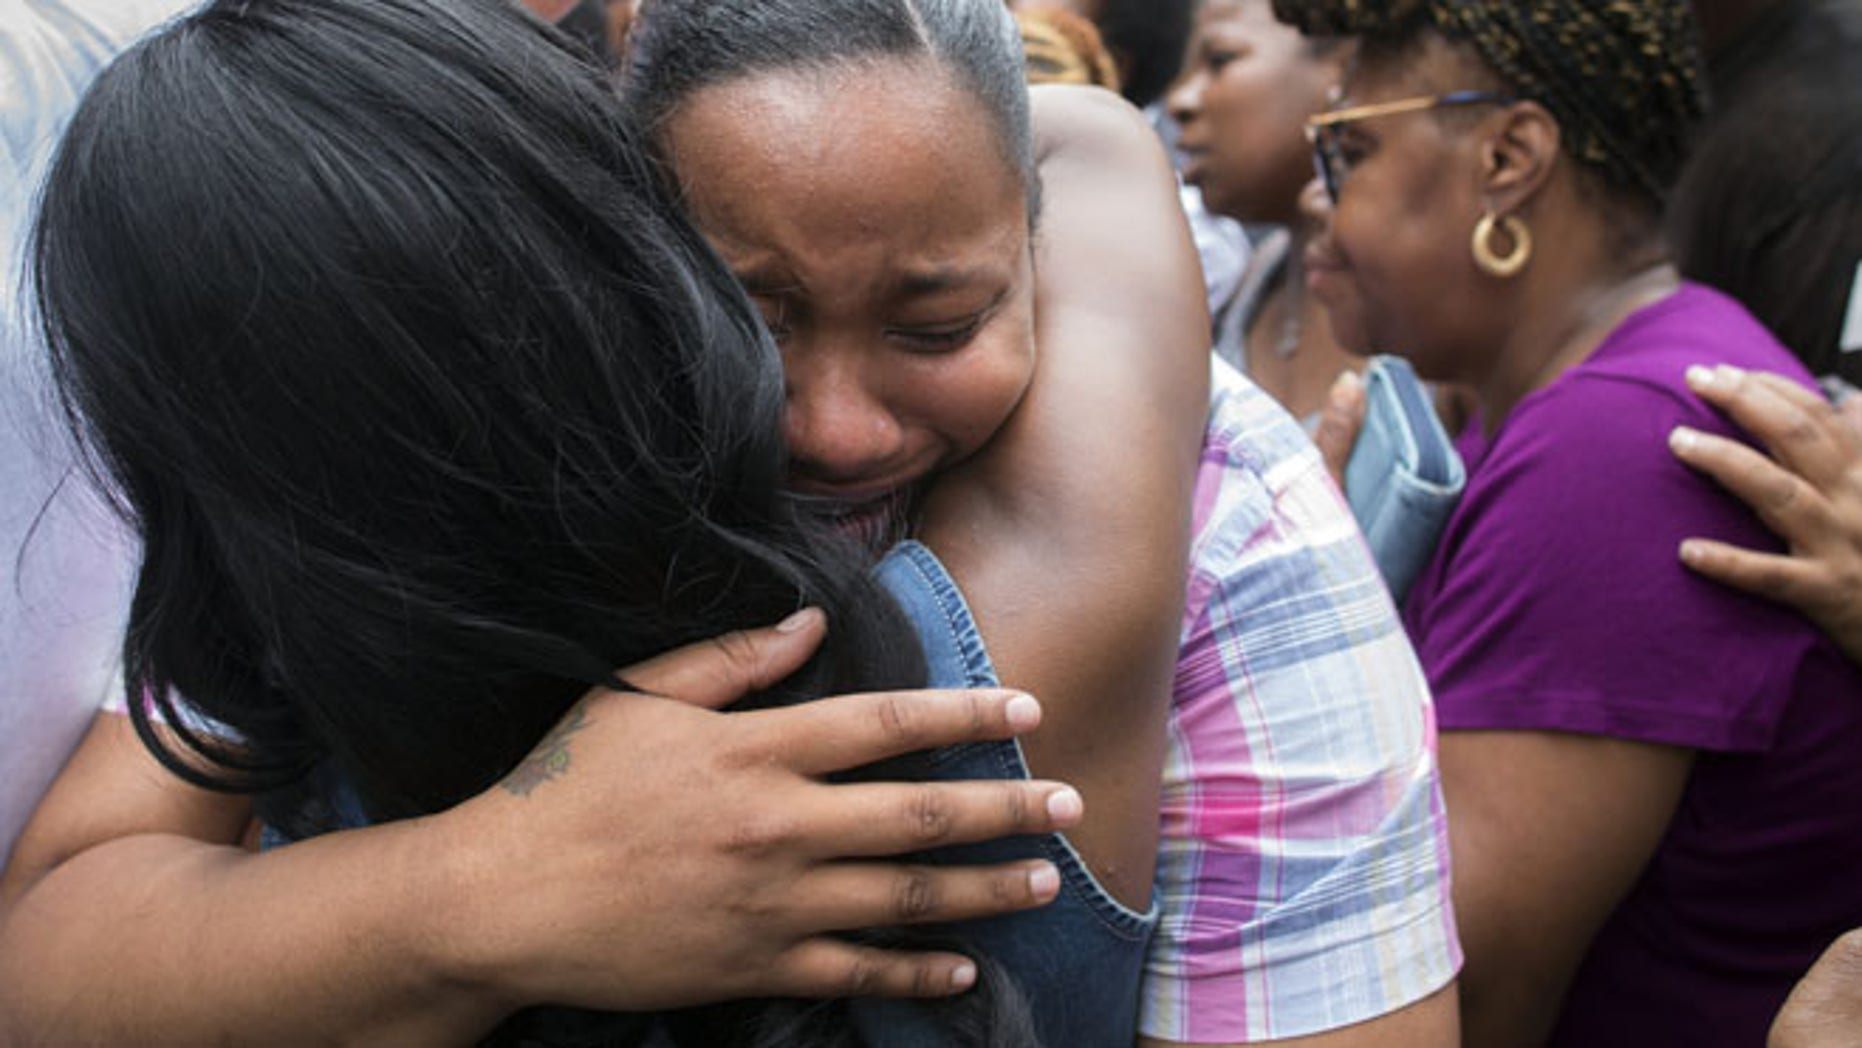 July 19, 2014: Emerald Garner, daughter of Eric Garner, mourns at the site of her father's death on a march following a service held in his name at the Mount Sinai Center for Community Enrichmen in the Staten Island borough of New York. (AP)